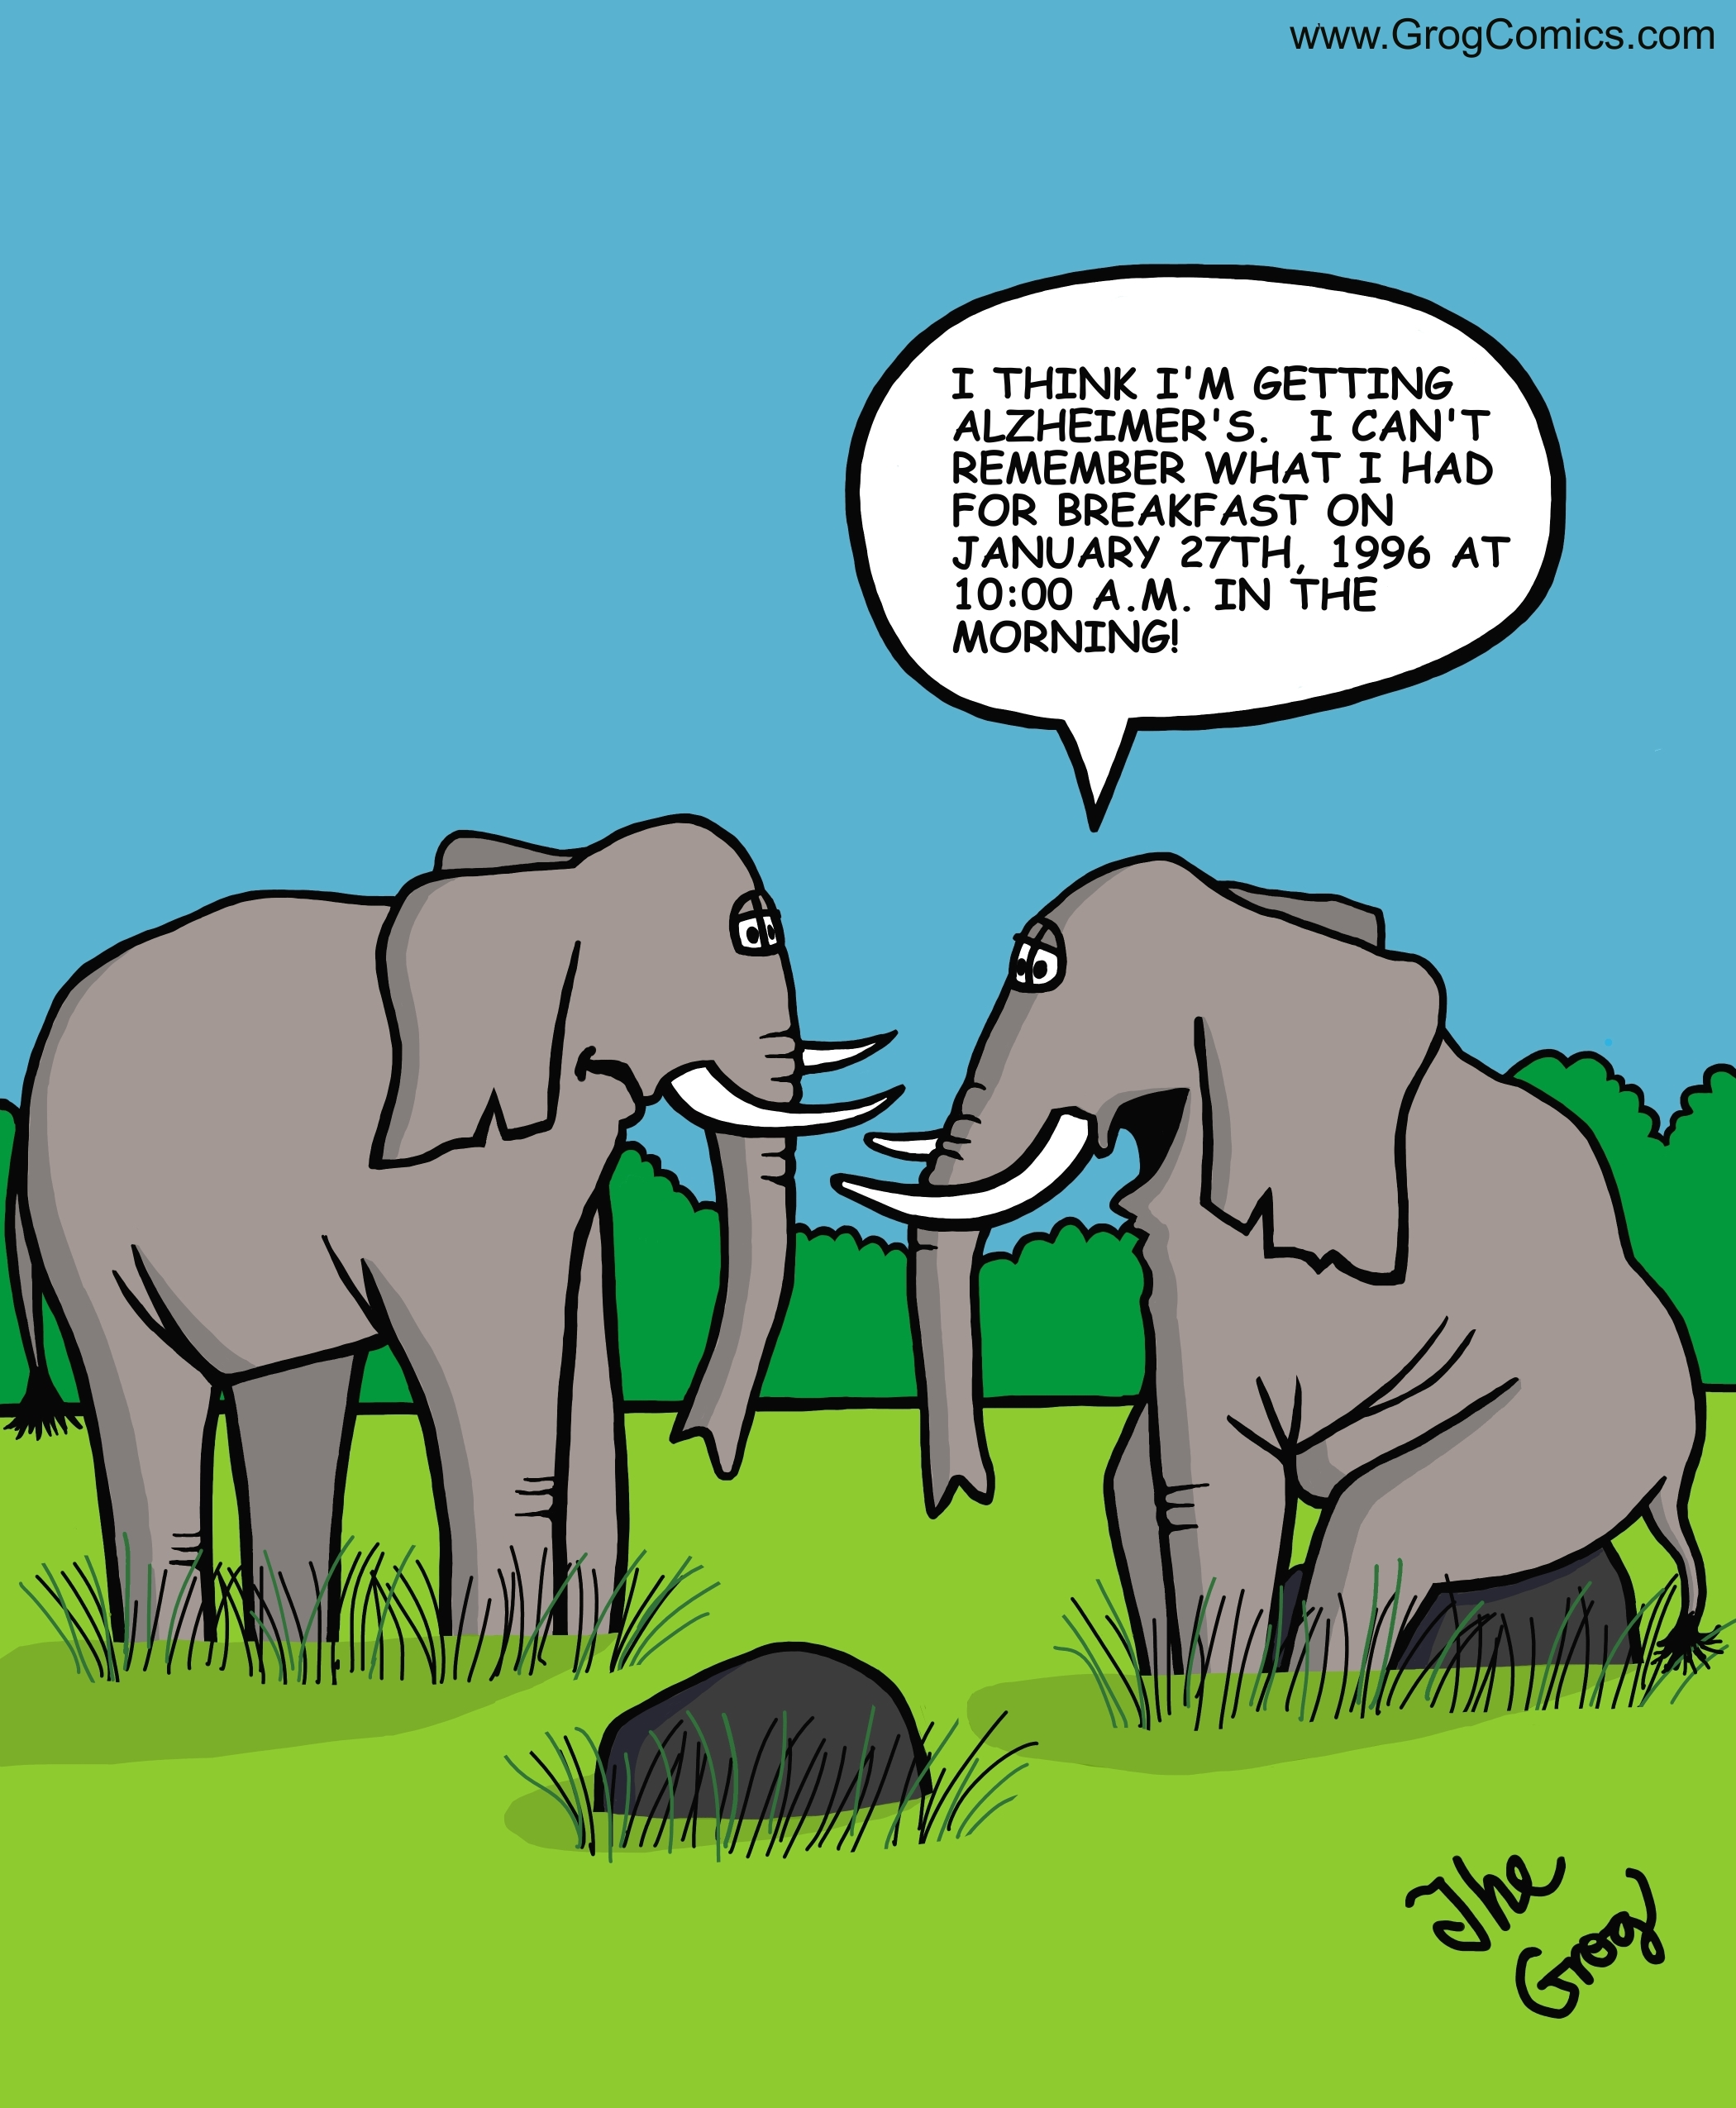 """One elephant says to the other, """"I think I'm getting Alzheimer's. I can't remember what I had for breakfast on January 27th, 1996 at 10:00 am in the morning."""""""